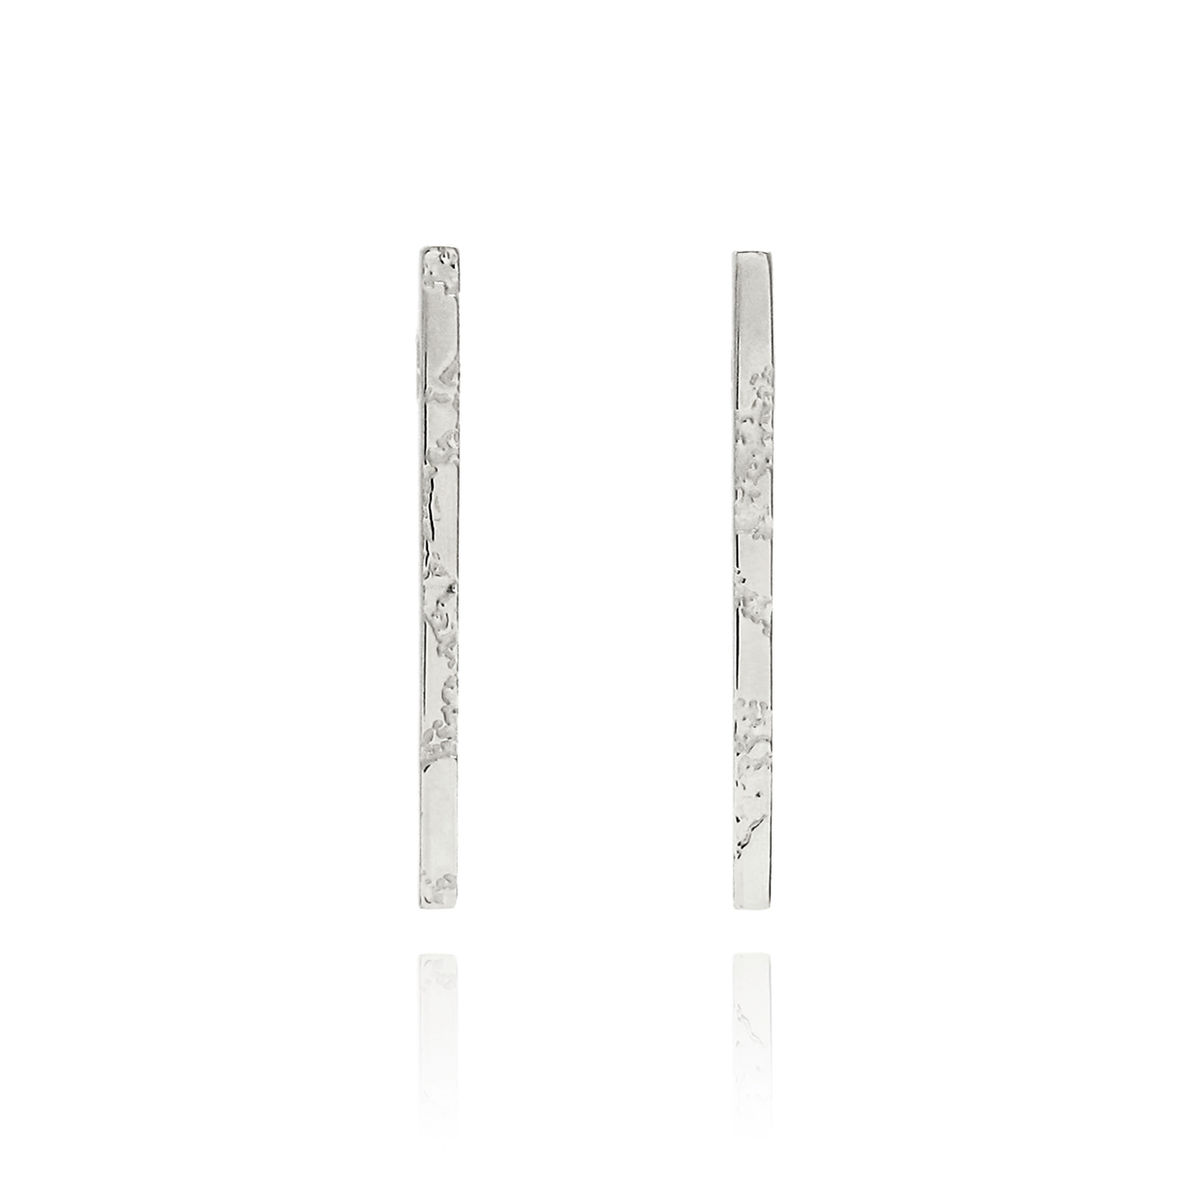 SKIN textured straight bar earrings - sterling silver - product image